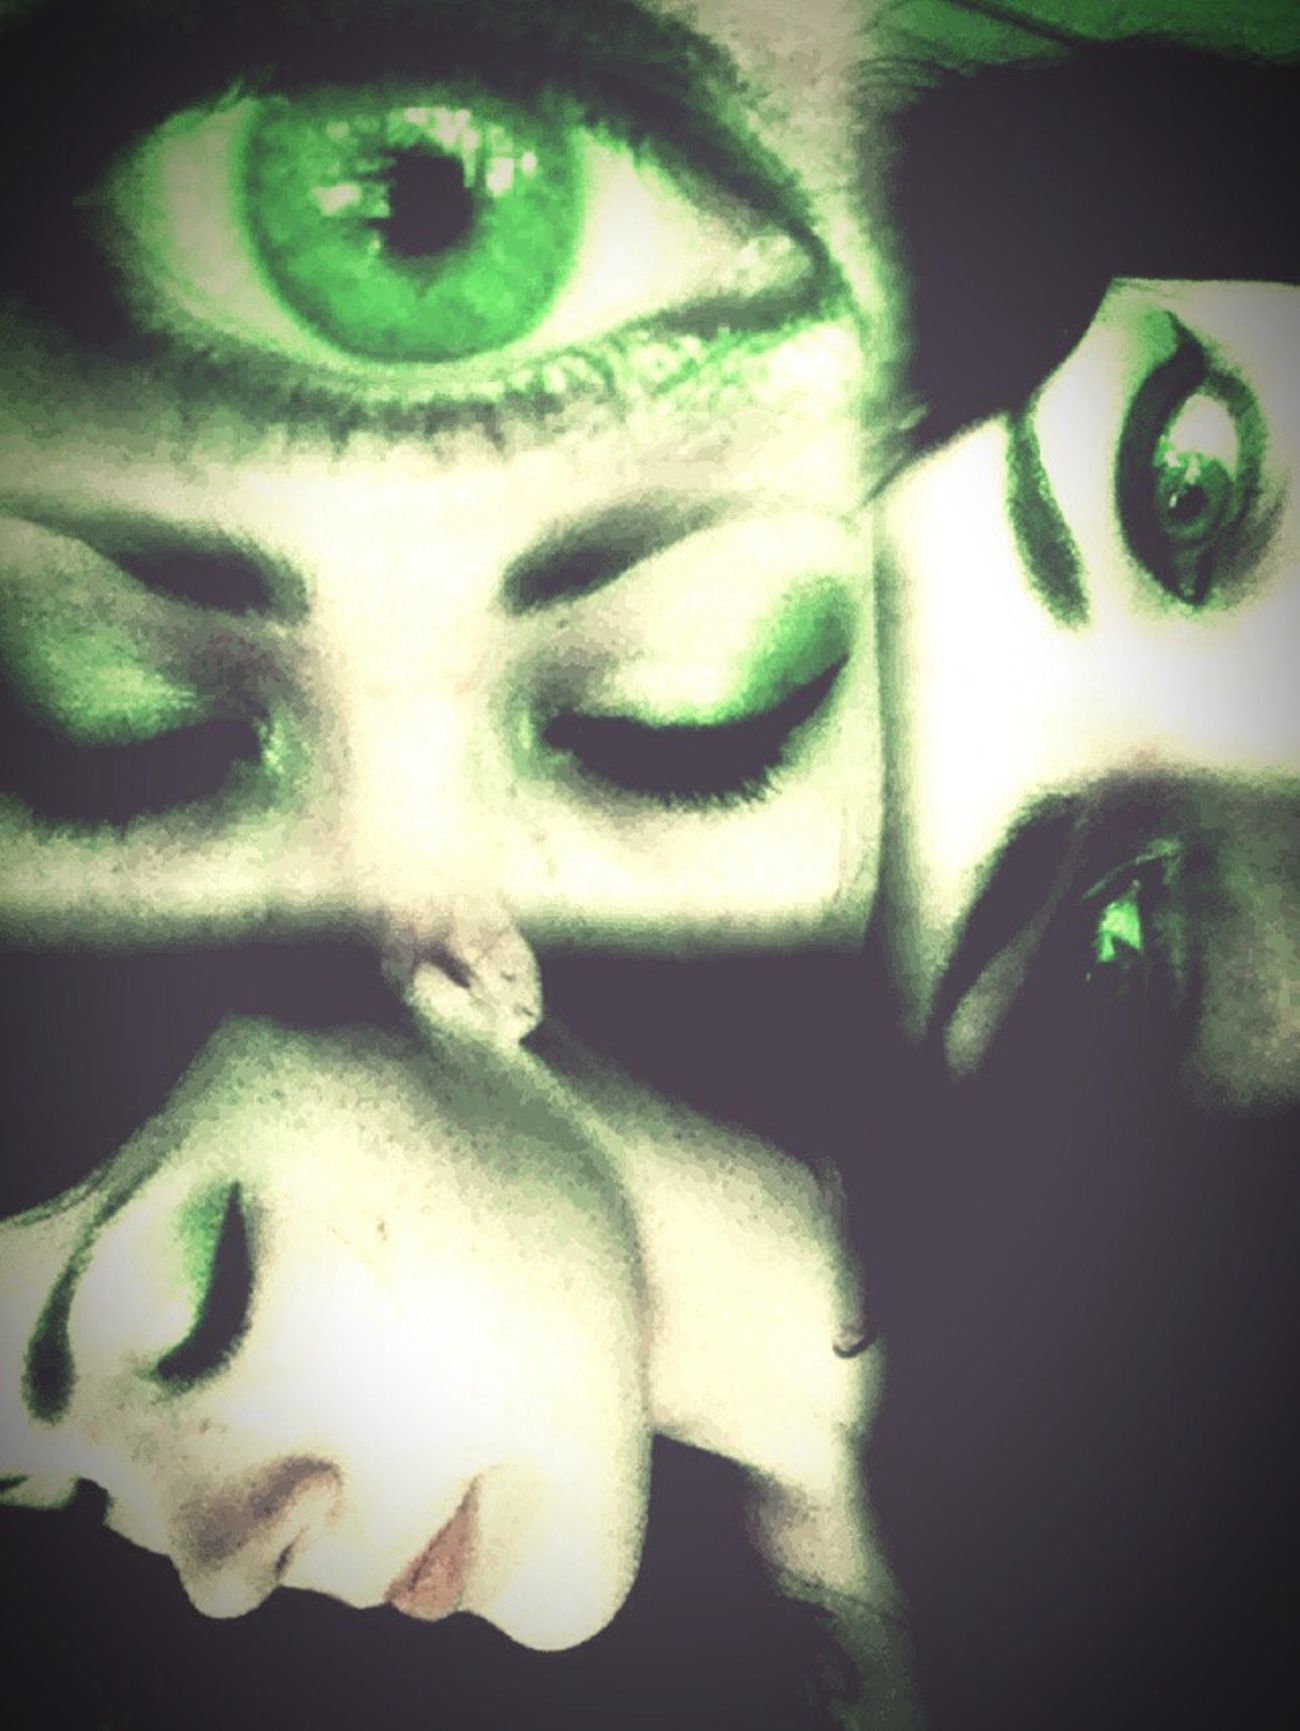 Eyes Green Women Of EyeEm Thrid Eye Green Eyes Girls Whereismymind Distortion Psychedelic Abstract